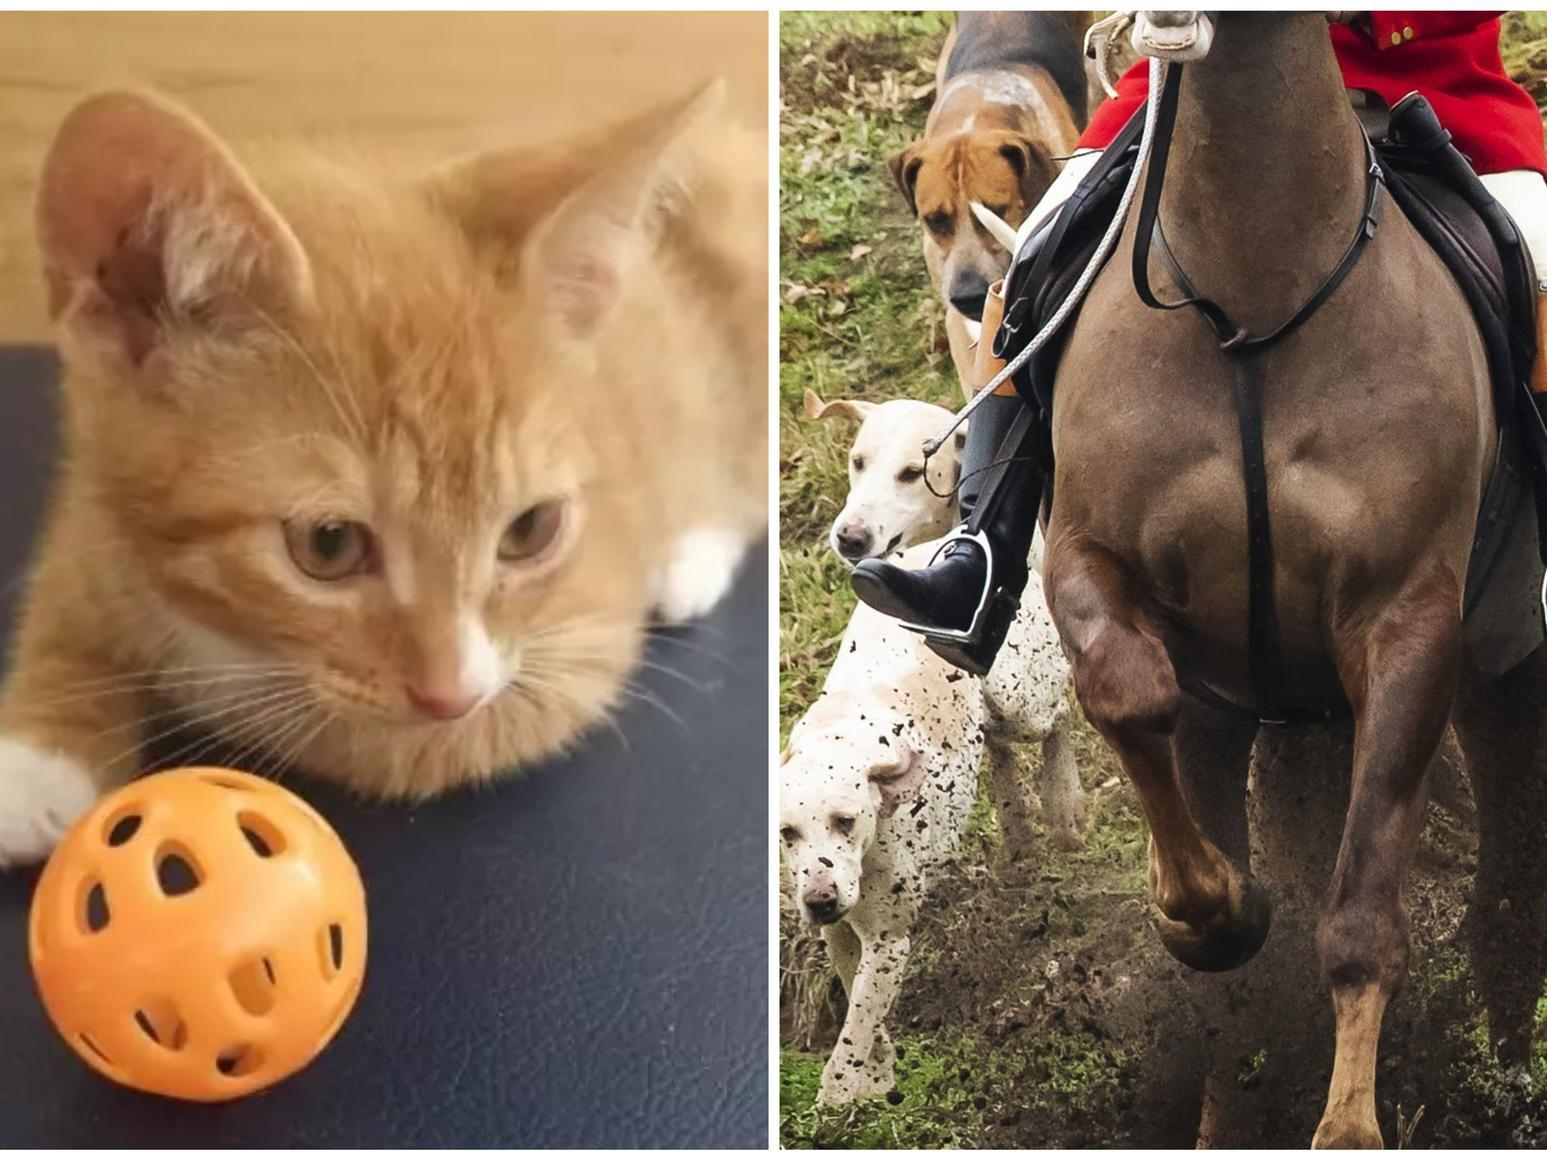 Eight-month-old kitten 'ripped to pieces' by dogs on Christmas hunt in Leeds